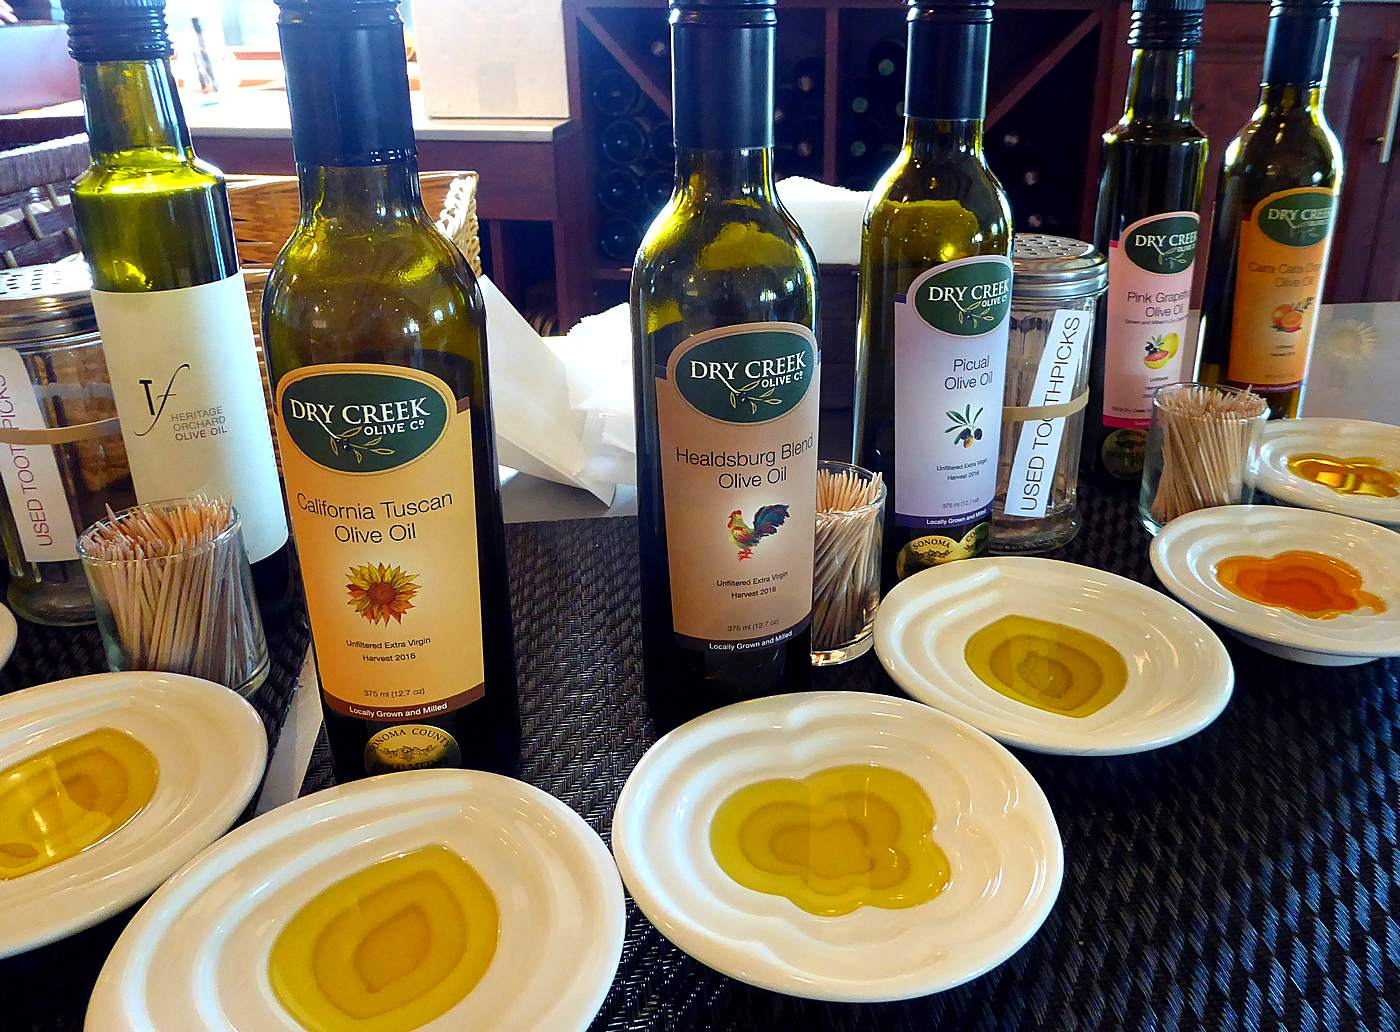 Dry Creek Olive Co. oils at Trattore tasting room